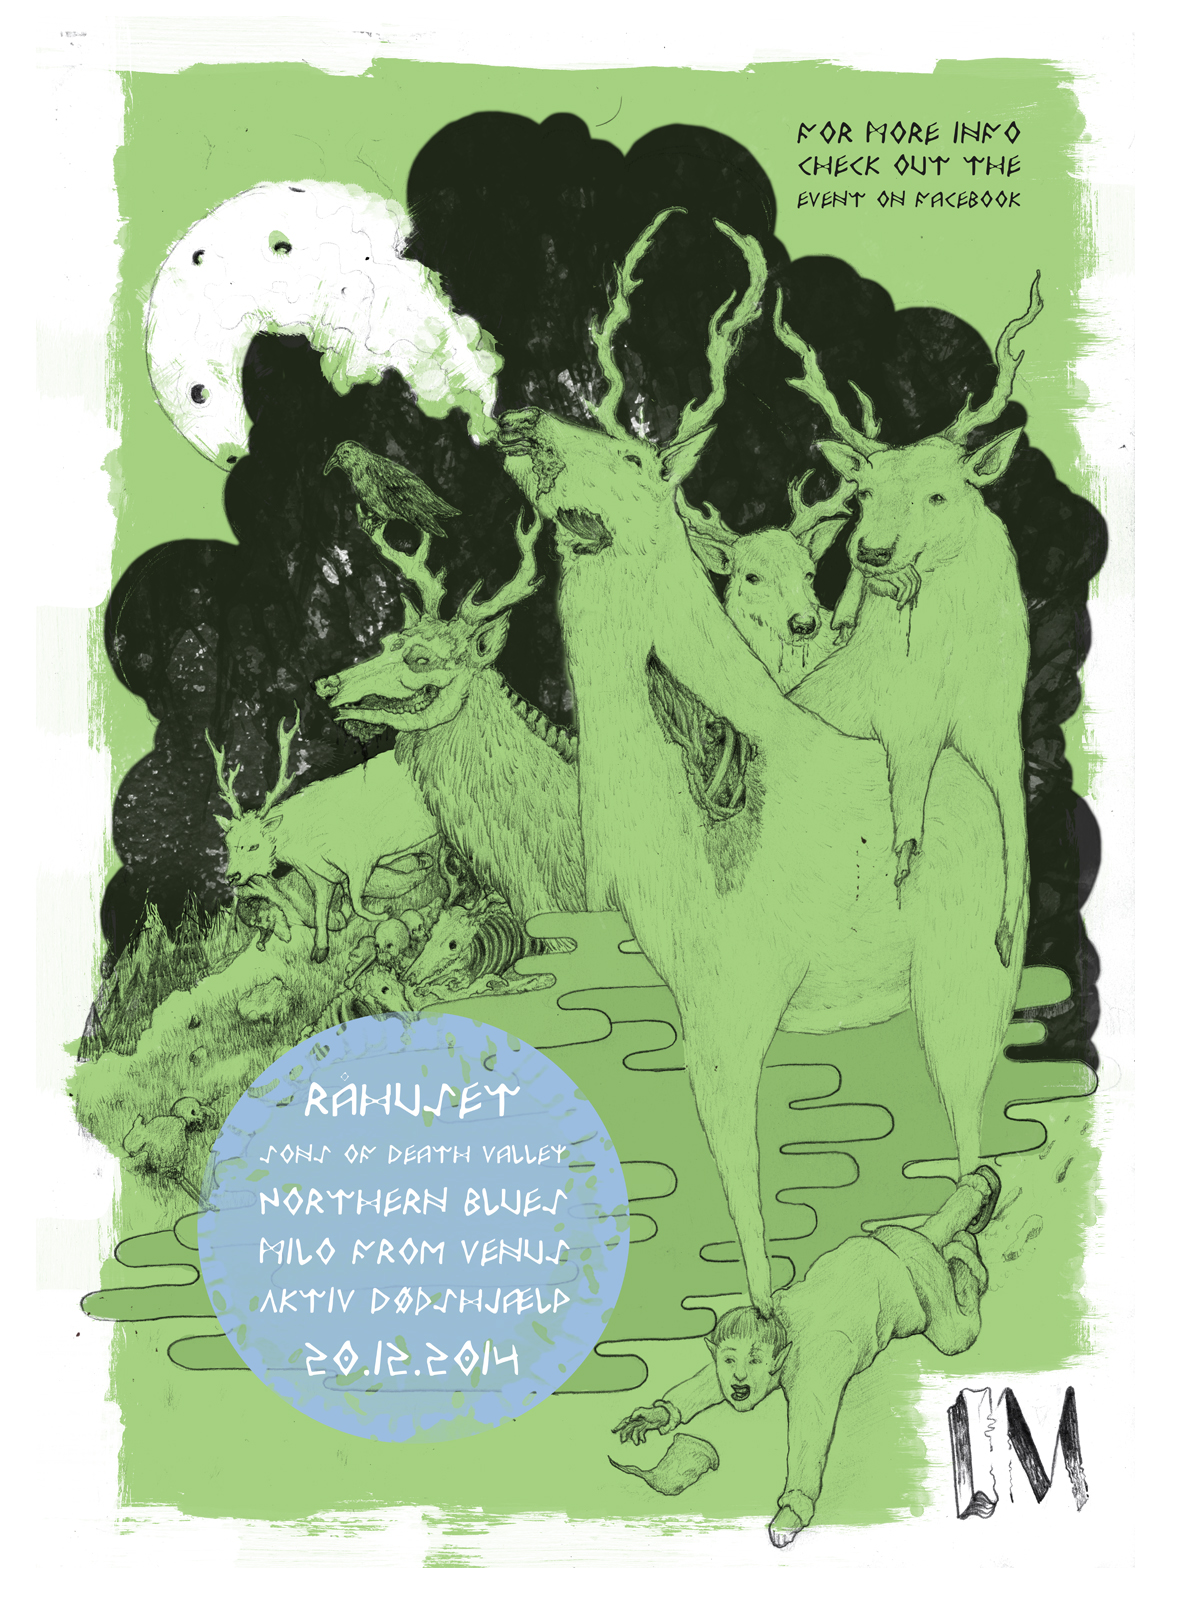 Poster for Raahuset